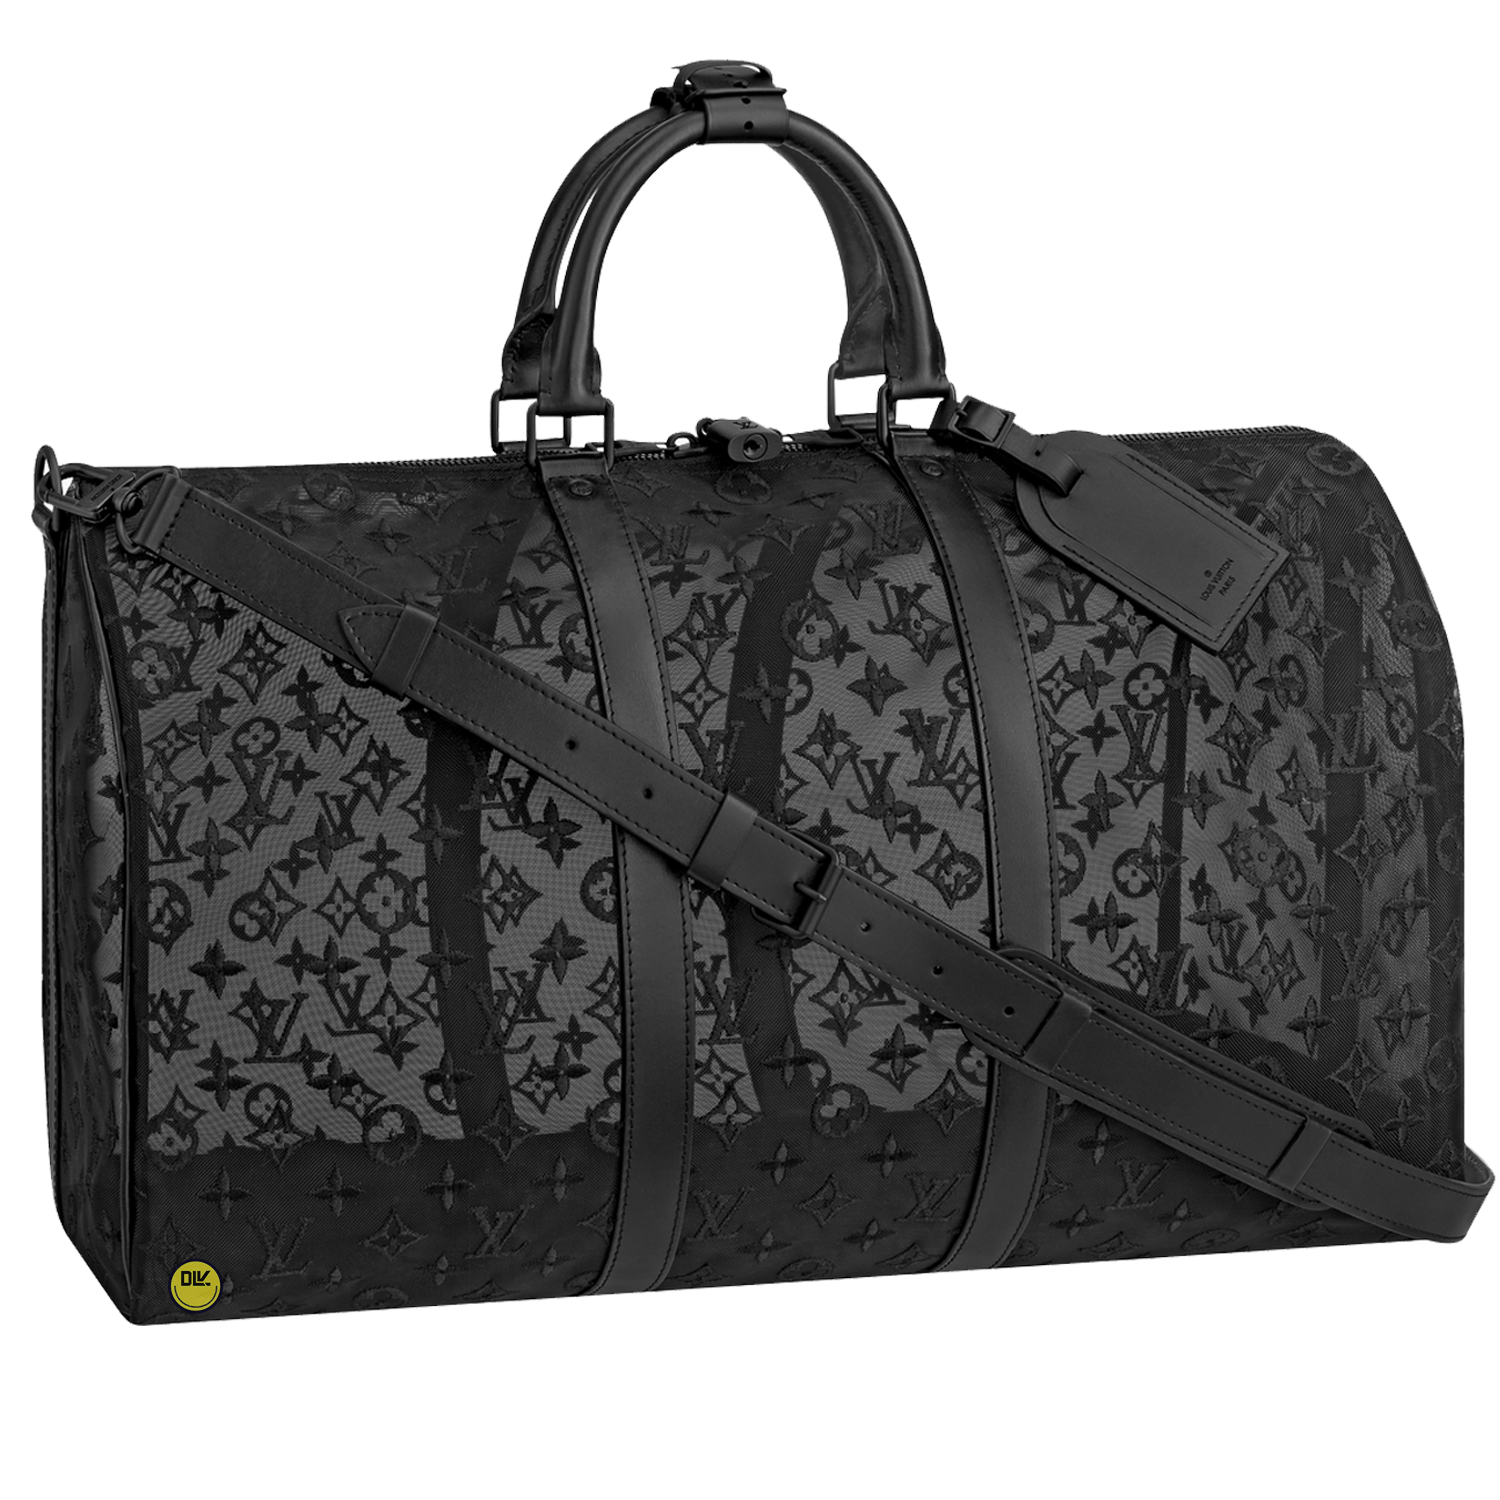 KEEPALL 50B - €2700 $3850M53971MONOGRAM SEE THROUGH